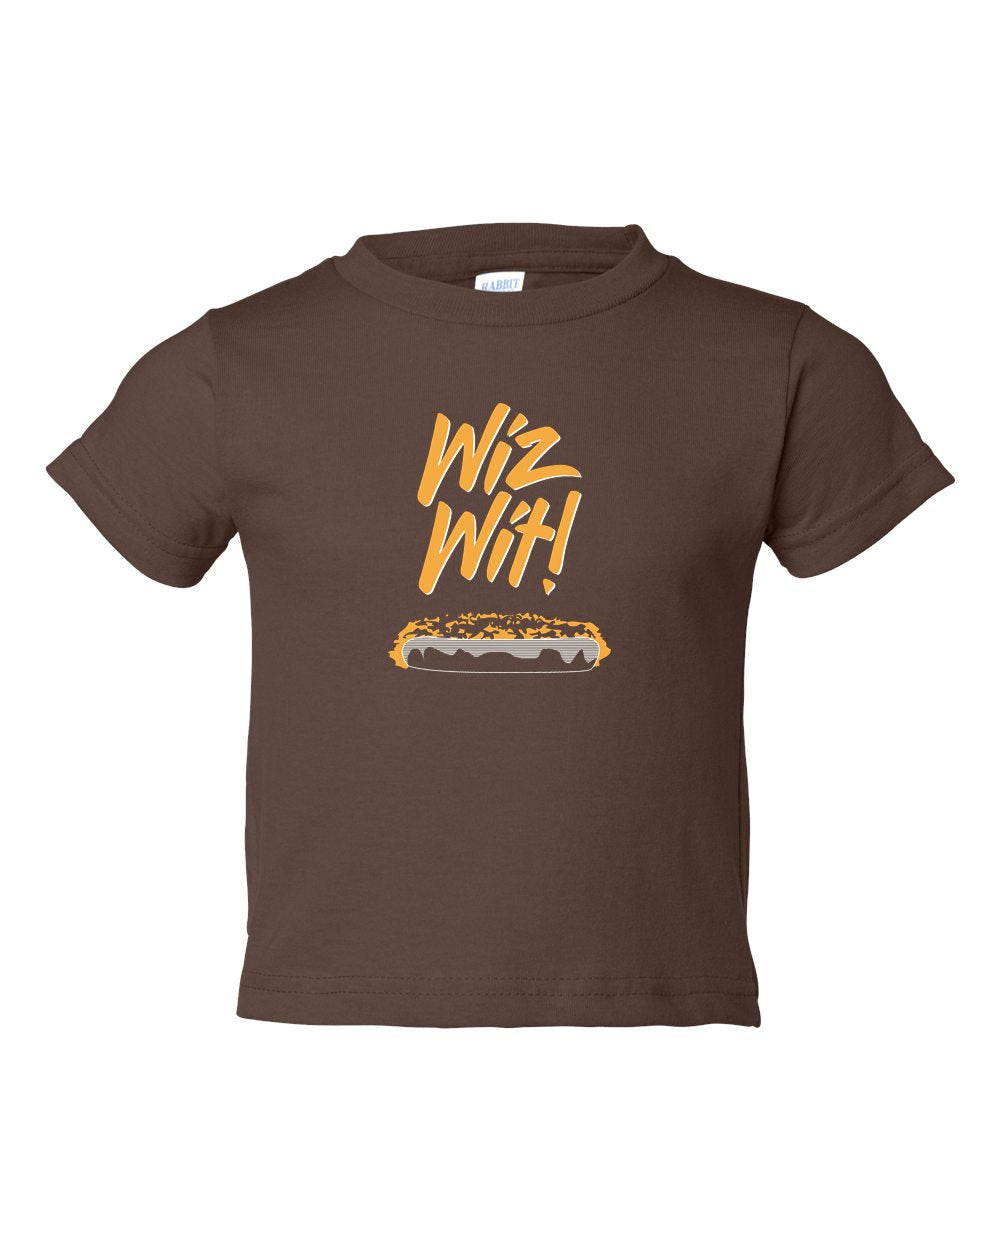 Wiz Wit TODDLER T-Shirt